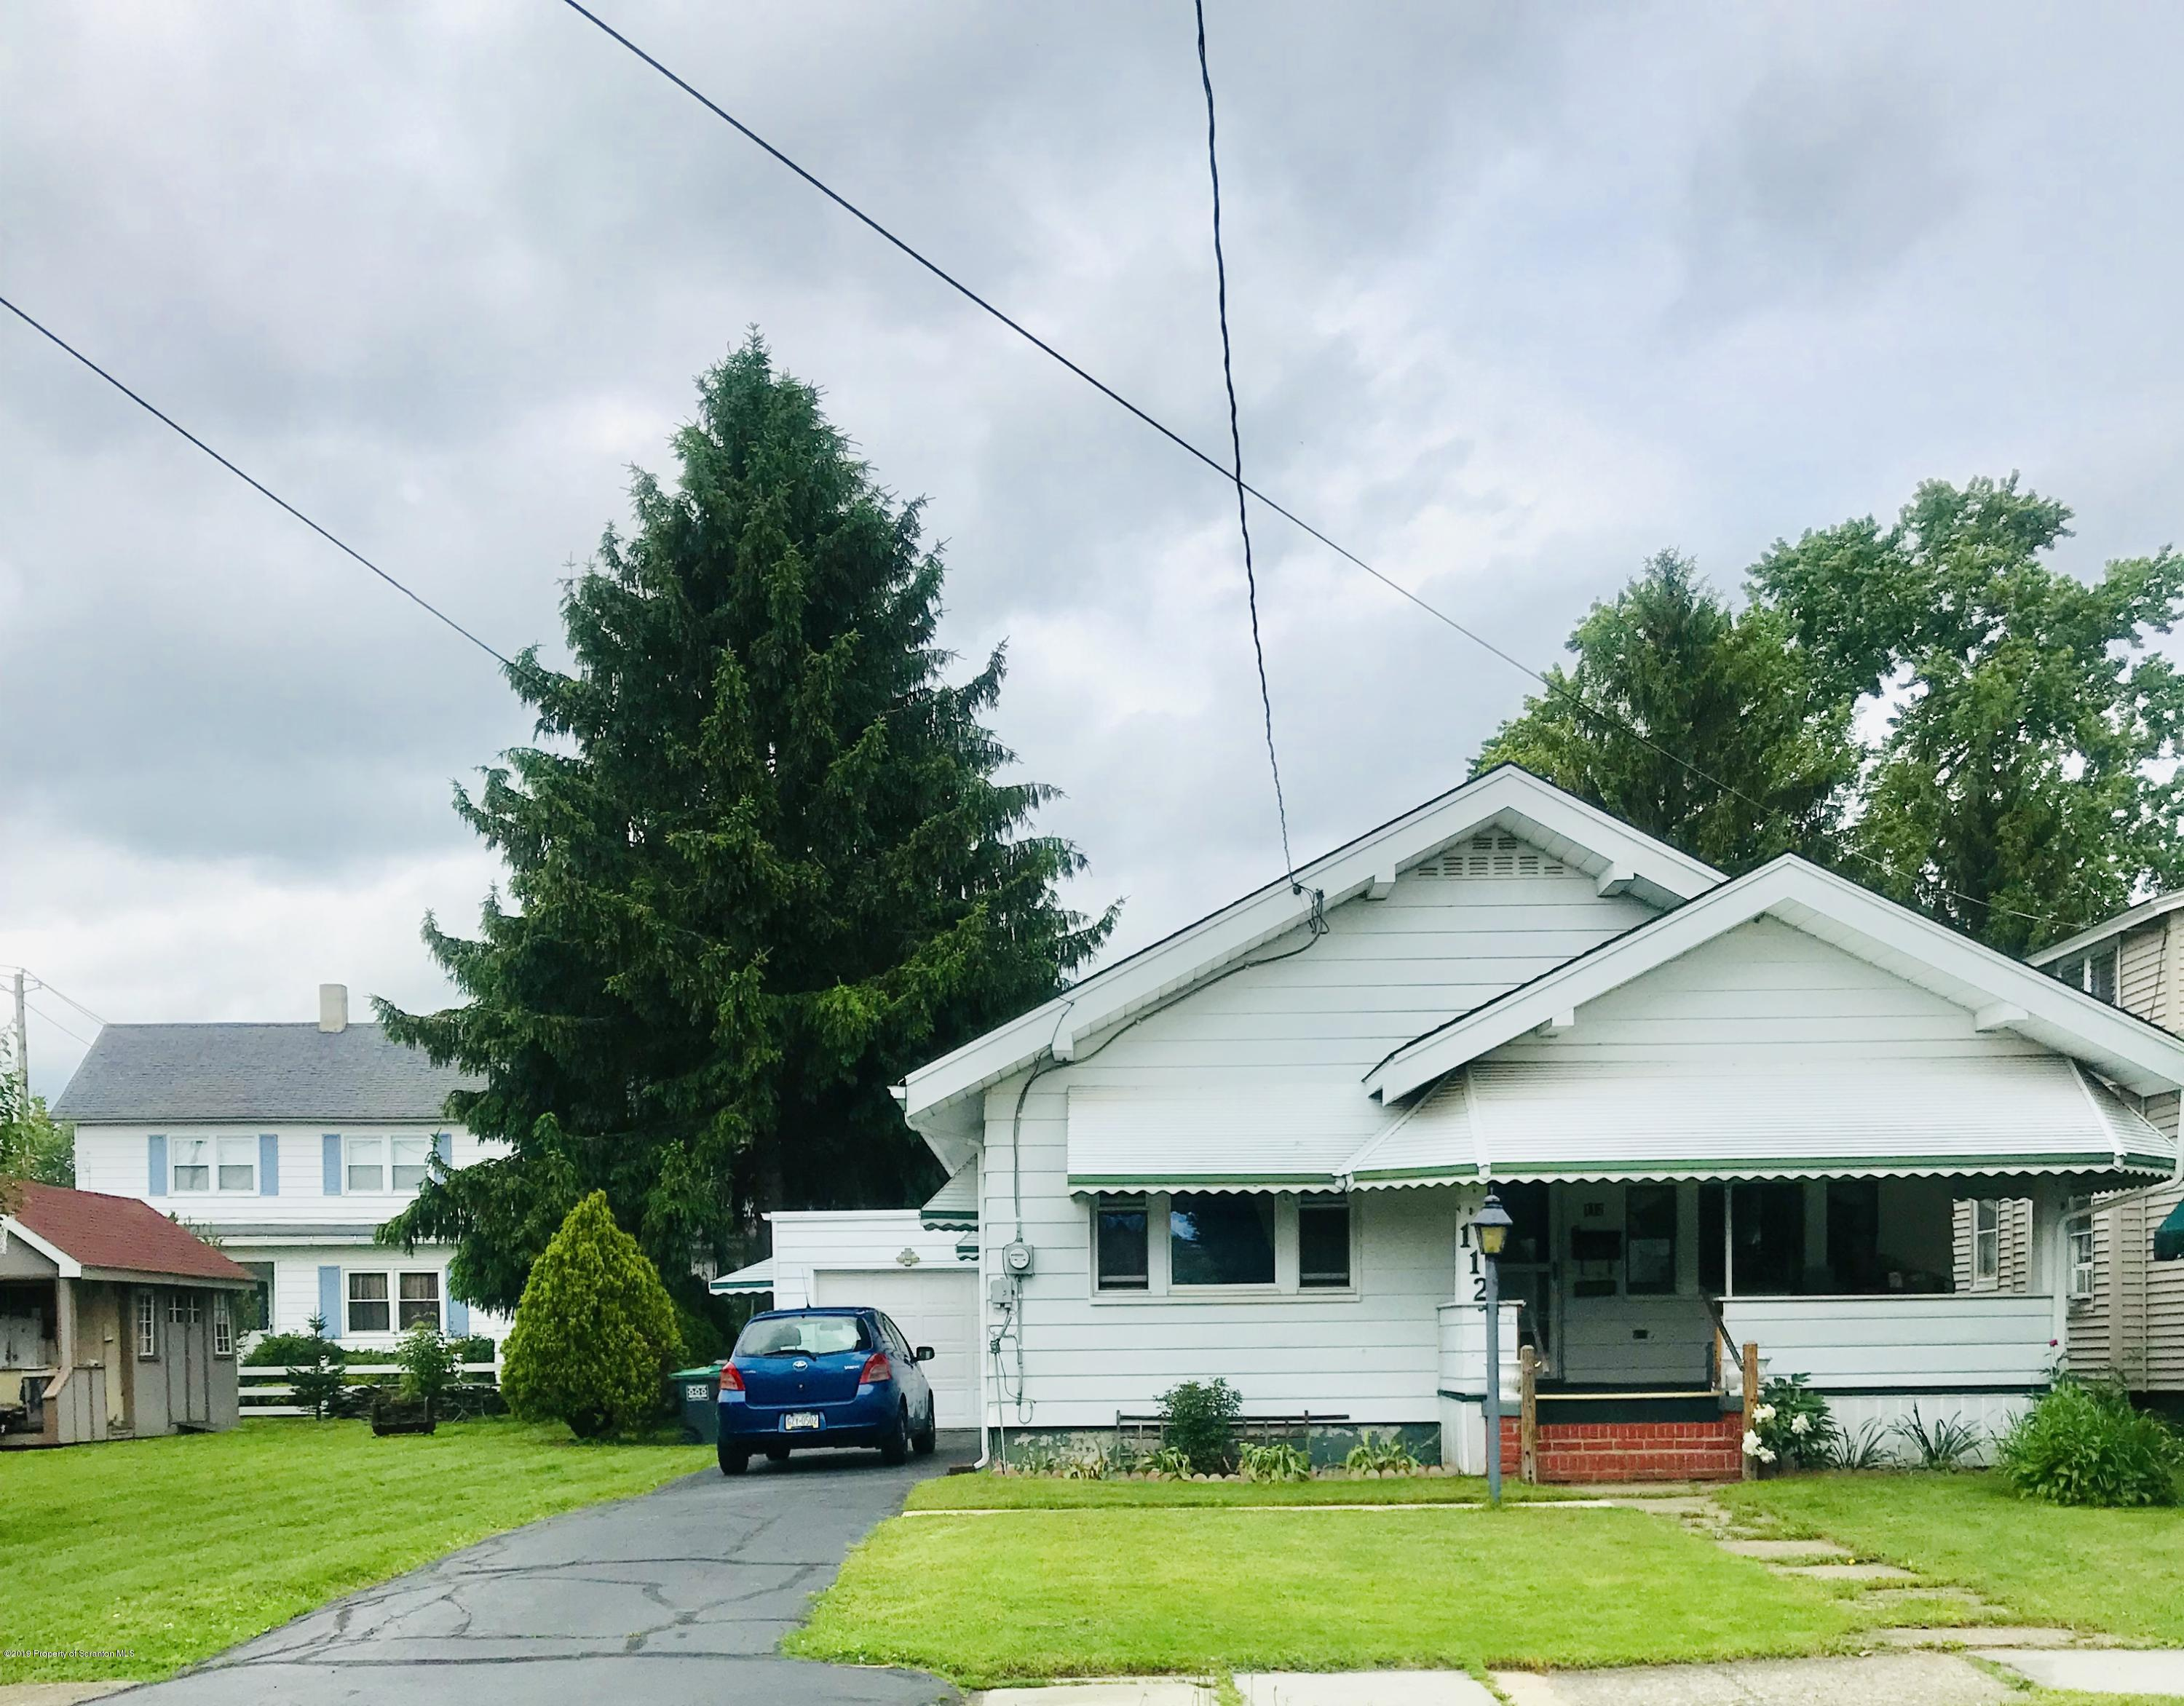 112 Bacon St, Jermyn, Pennsylvania 18433, 2 Bedrooms Bedrooms, 5 Rooms Rooms,1 BathroomBathrooms,Single Family,For Sale,Bacon,19-2582